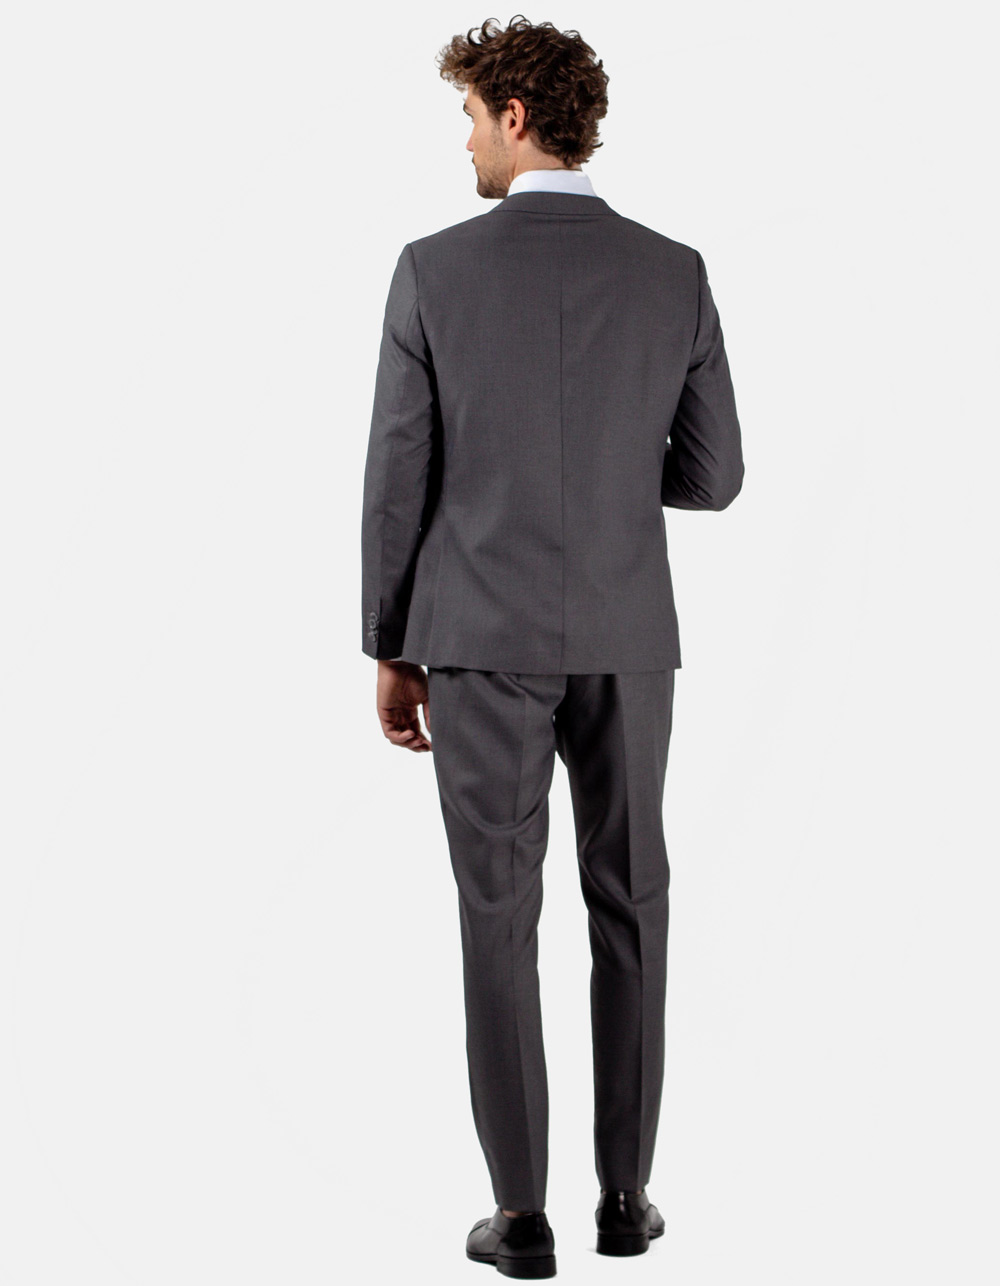 Grey plain suit - Backside